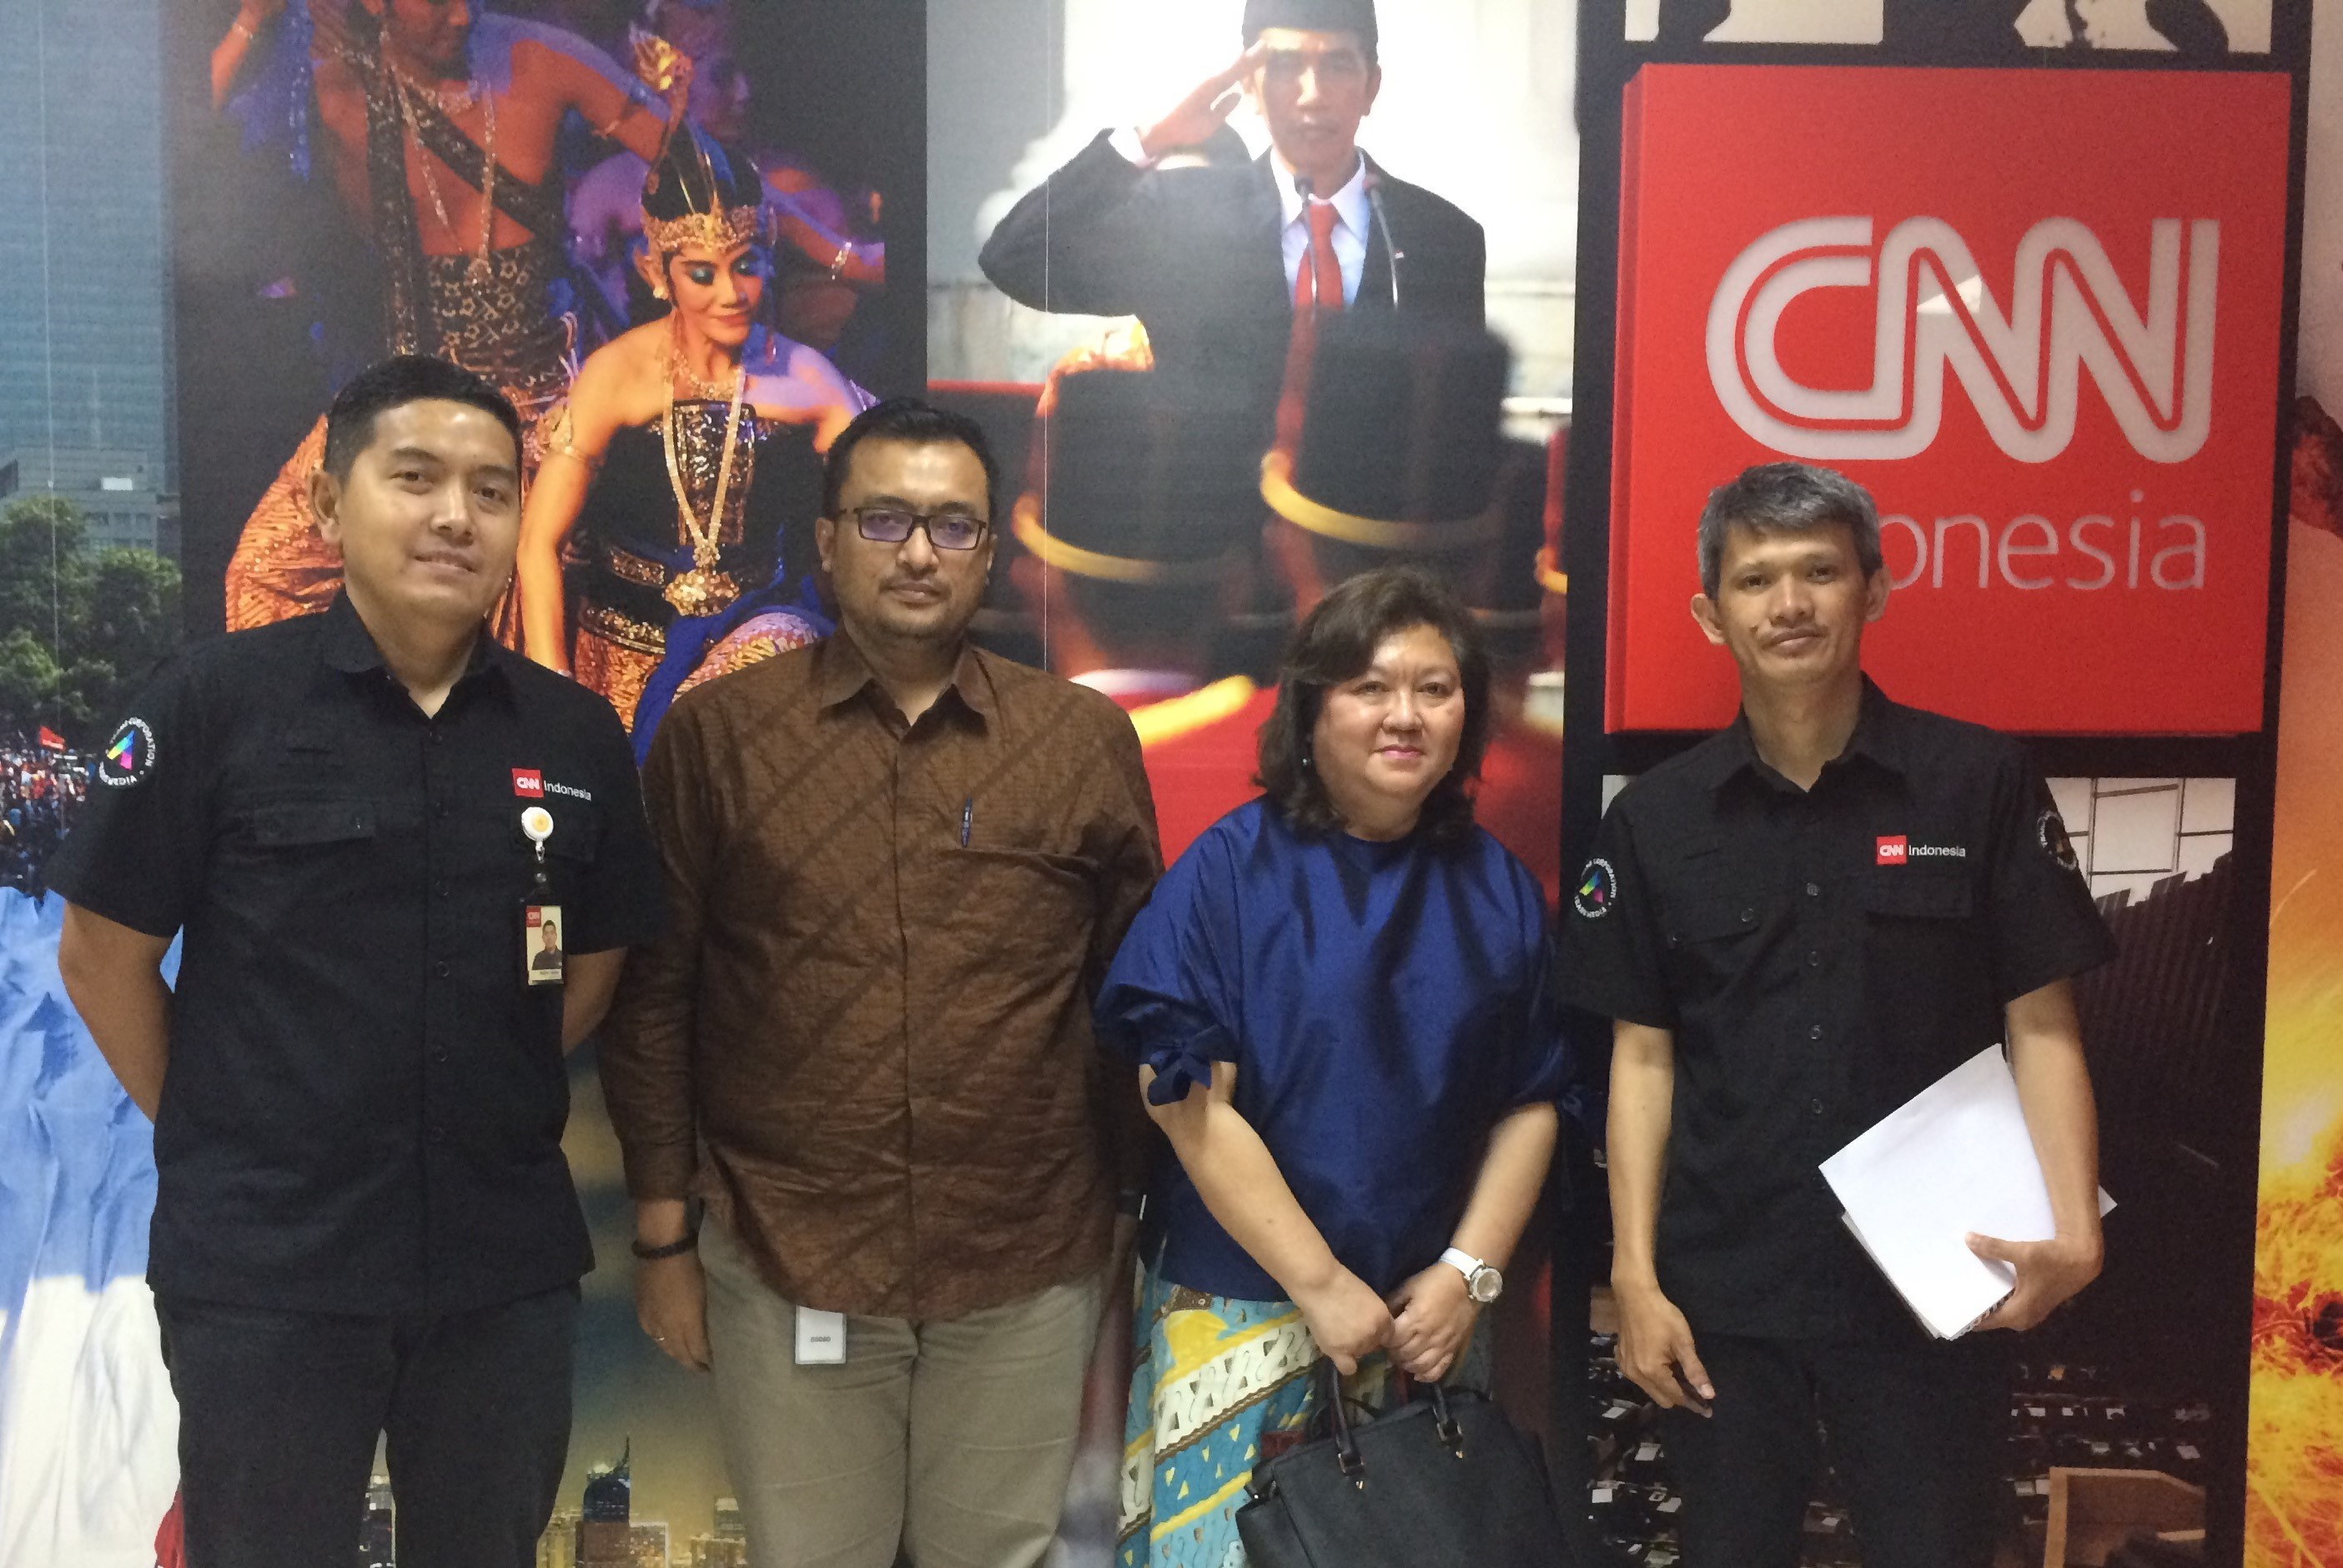 IPA goes to CNN Indonesia